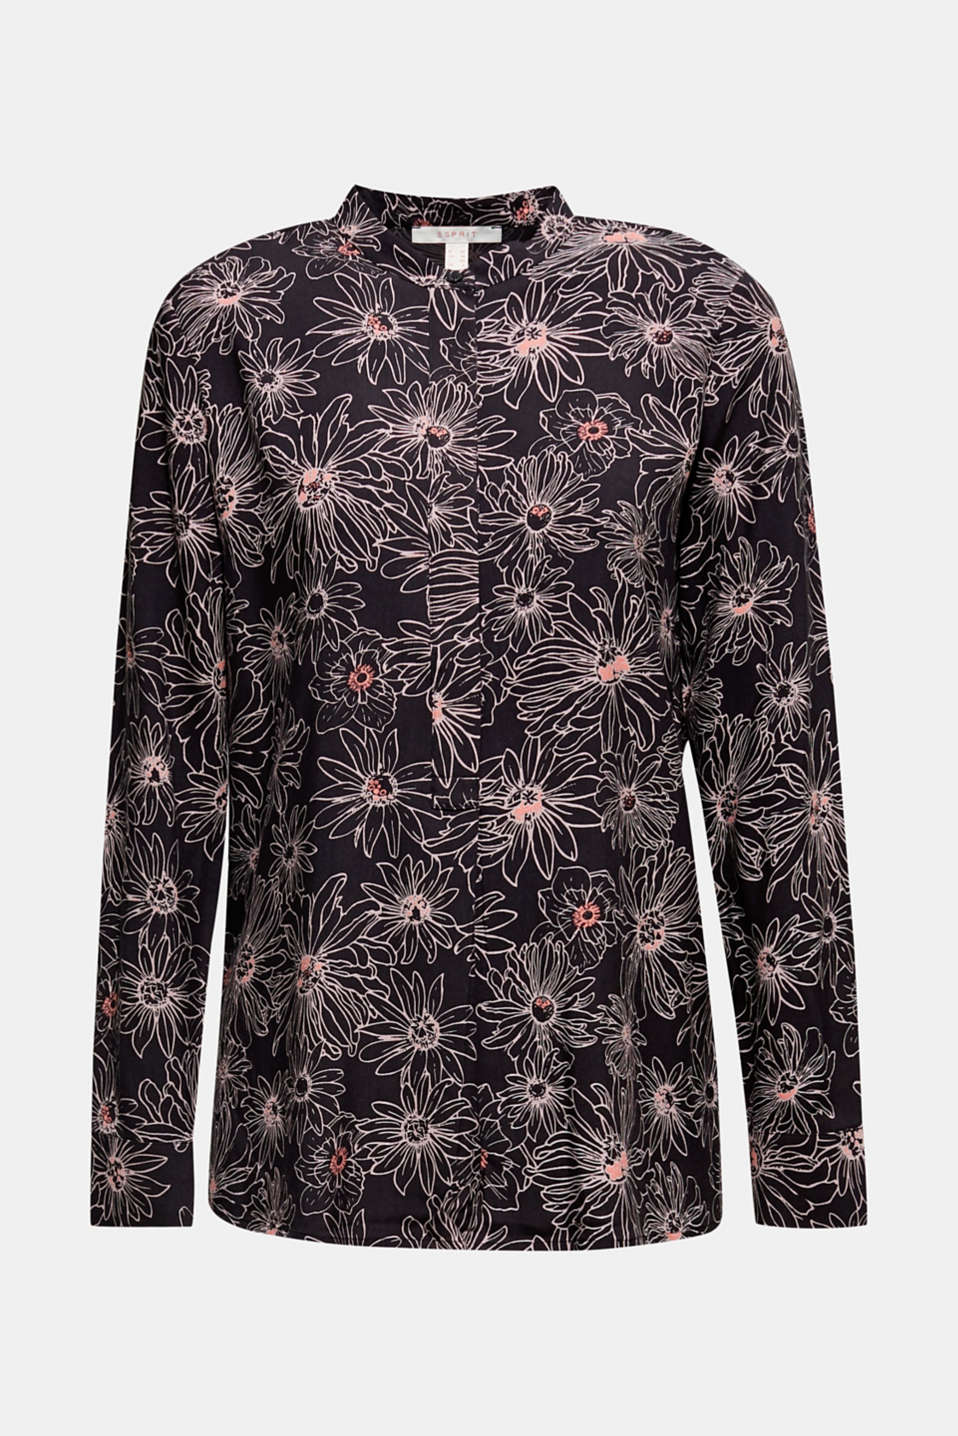 Slip-on blouse with a print and band collar, BLACK 3, detail image number 6